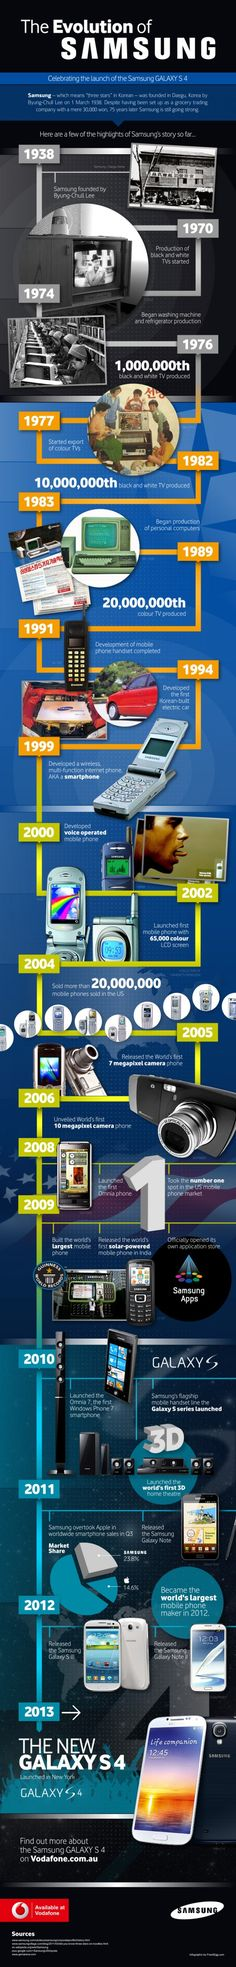 2013 marks the Anniversary of Samsung. From grocery trading in Korea, to the worlds largest mobile phone maker, lets look at the evolution of Samsung. Mobile Phone Logo, Apple Mobile Phones, Mobile Phone Shops, Mobile Phone Cases, Samsung, Mobile Device Management, Used Cell Phones, Video Advertising, Startup